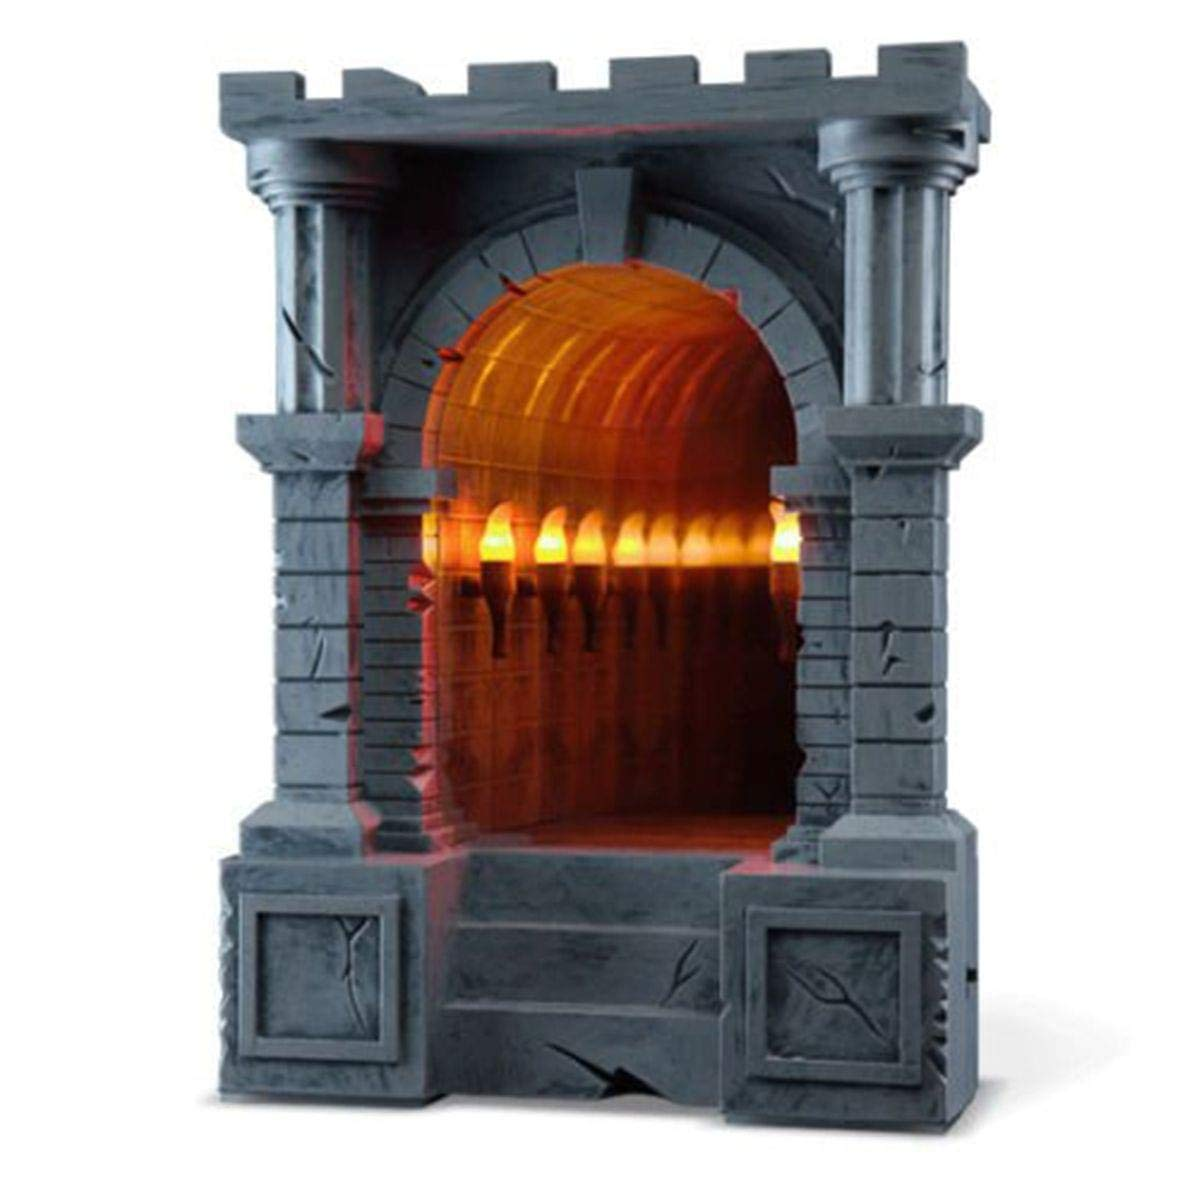 A ThinkGeek Creation and Exclusive 816A2 ThinkGeek Infinite Illuminated-Torch-Lined Dungeon Corridor Infinity Mirror Geeky Desk or Wall Accessory